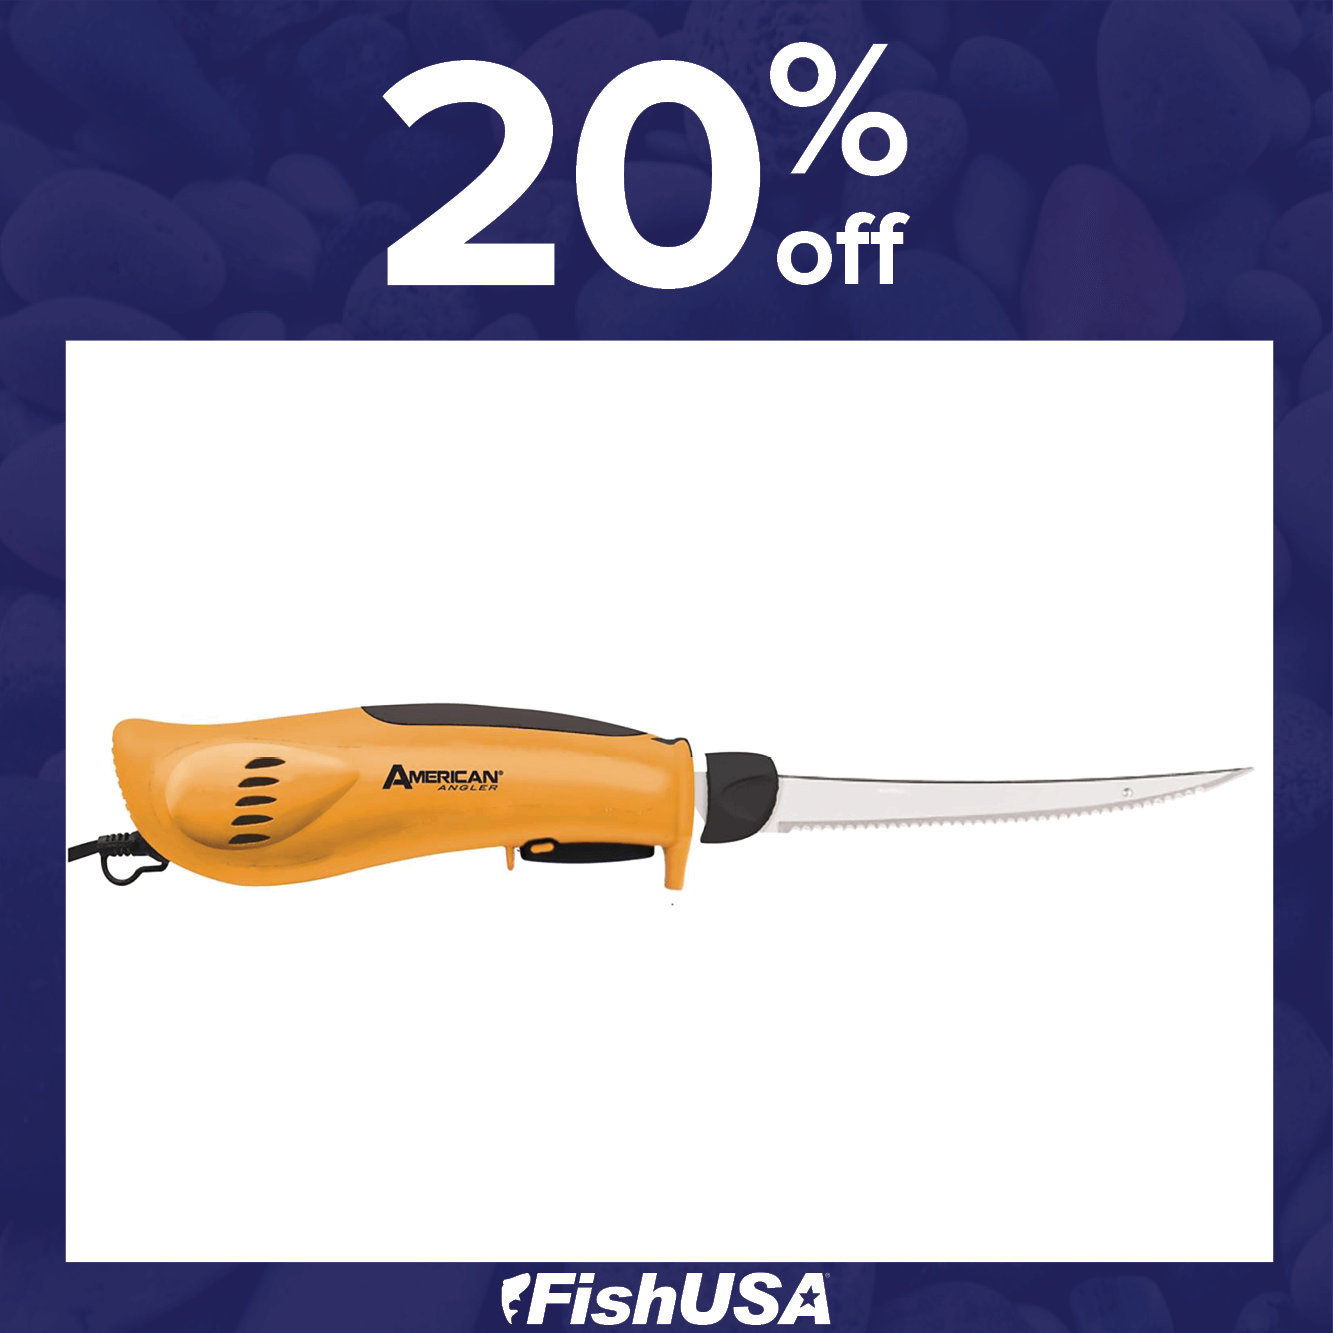 20% off the American Angler Pro Electric Fillet Knife